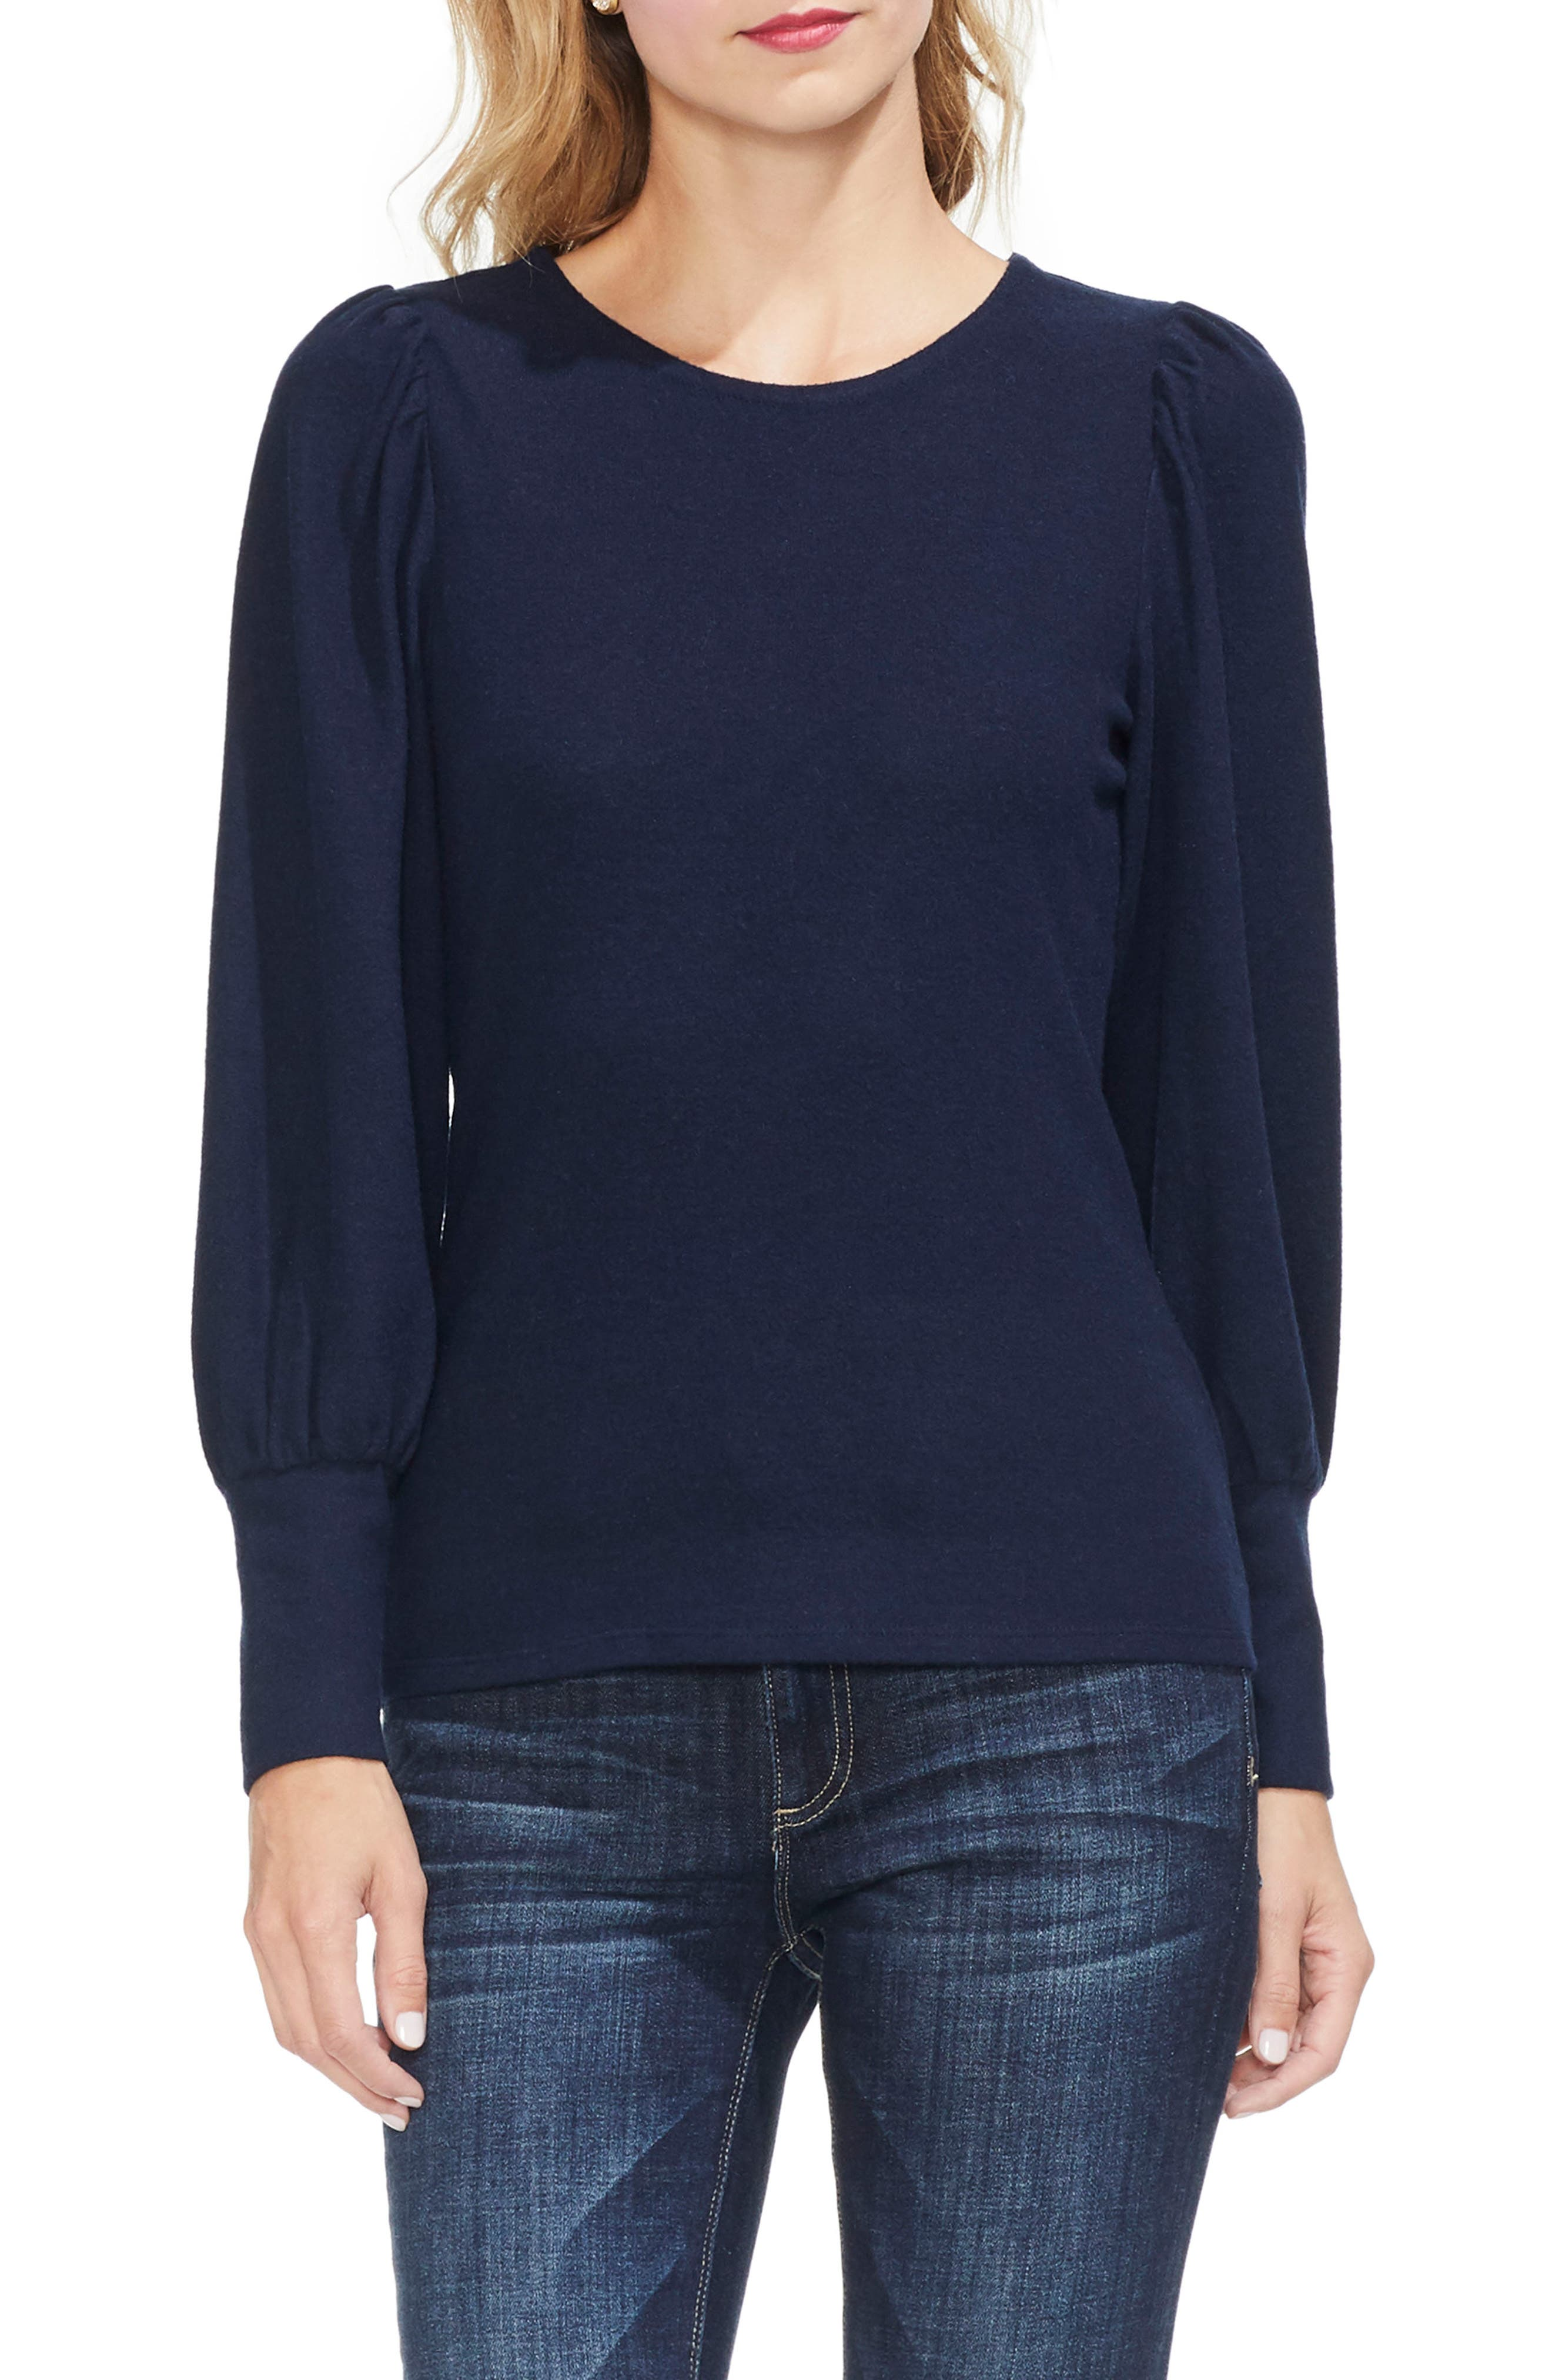 Vince Camuto Bubble Sleeve Knit Top, Blue